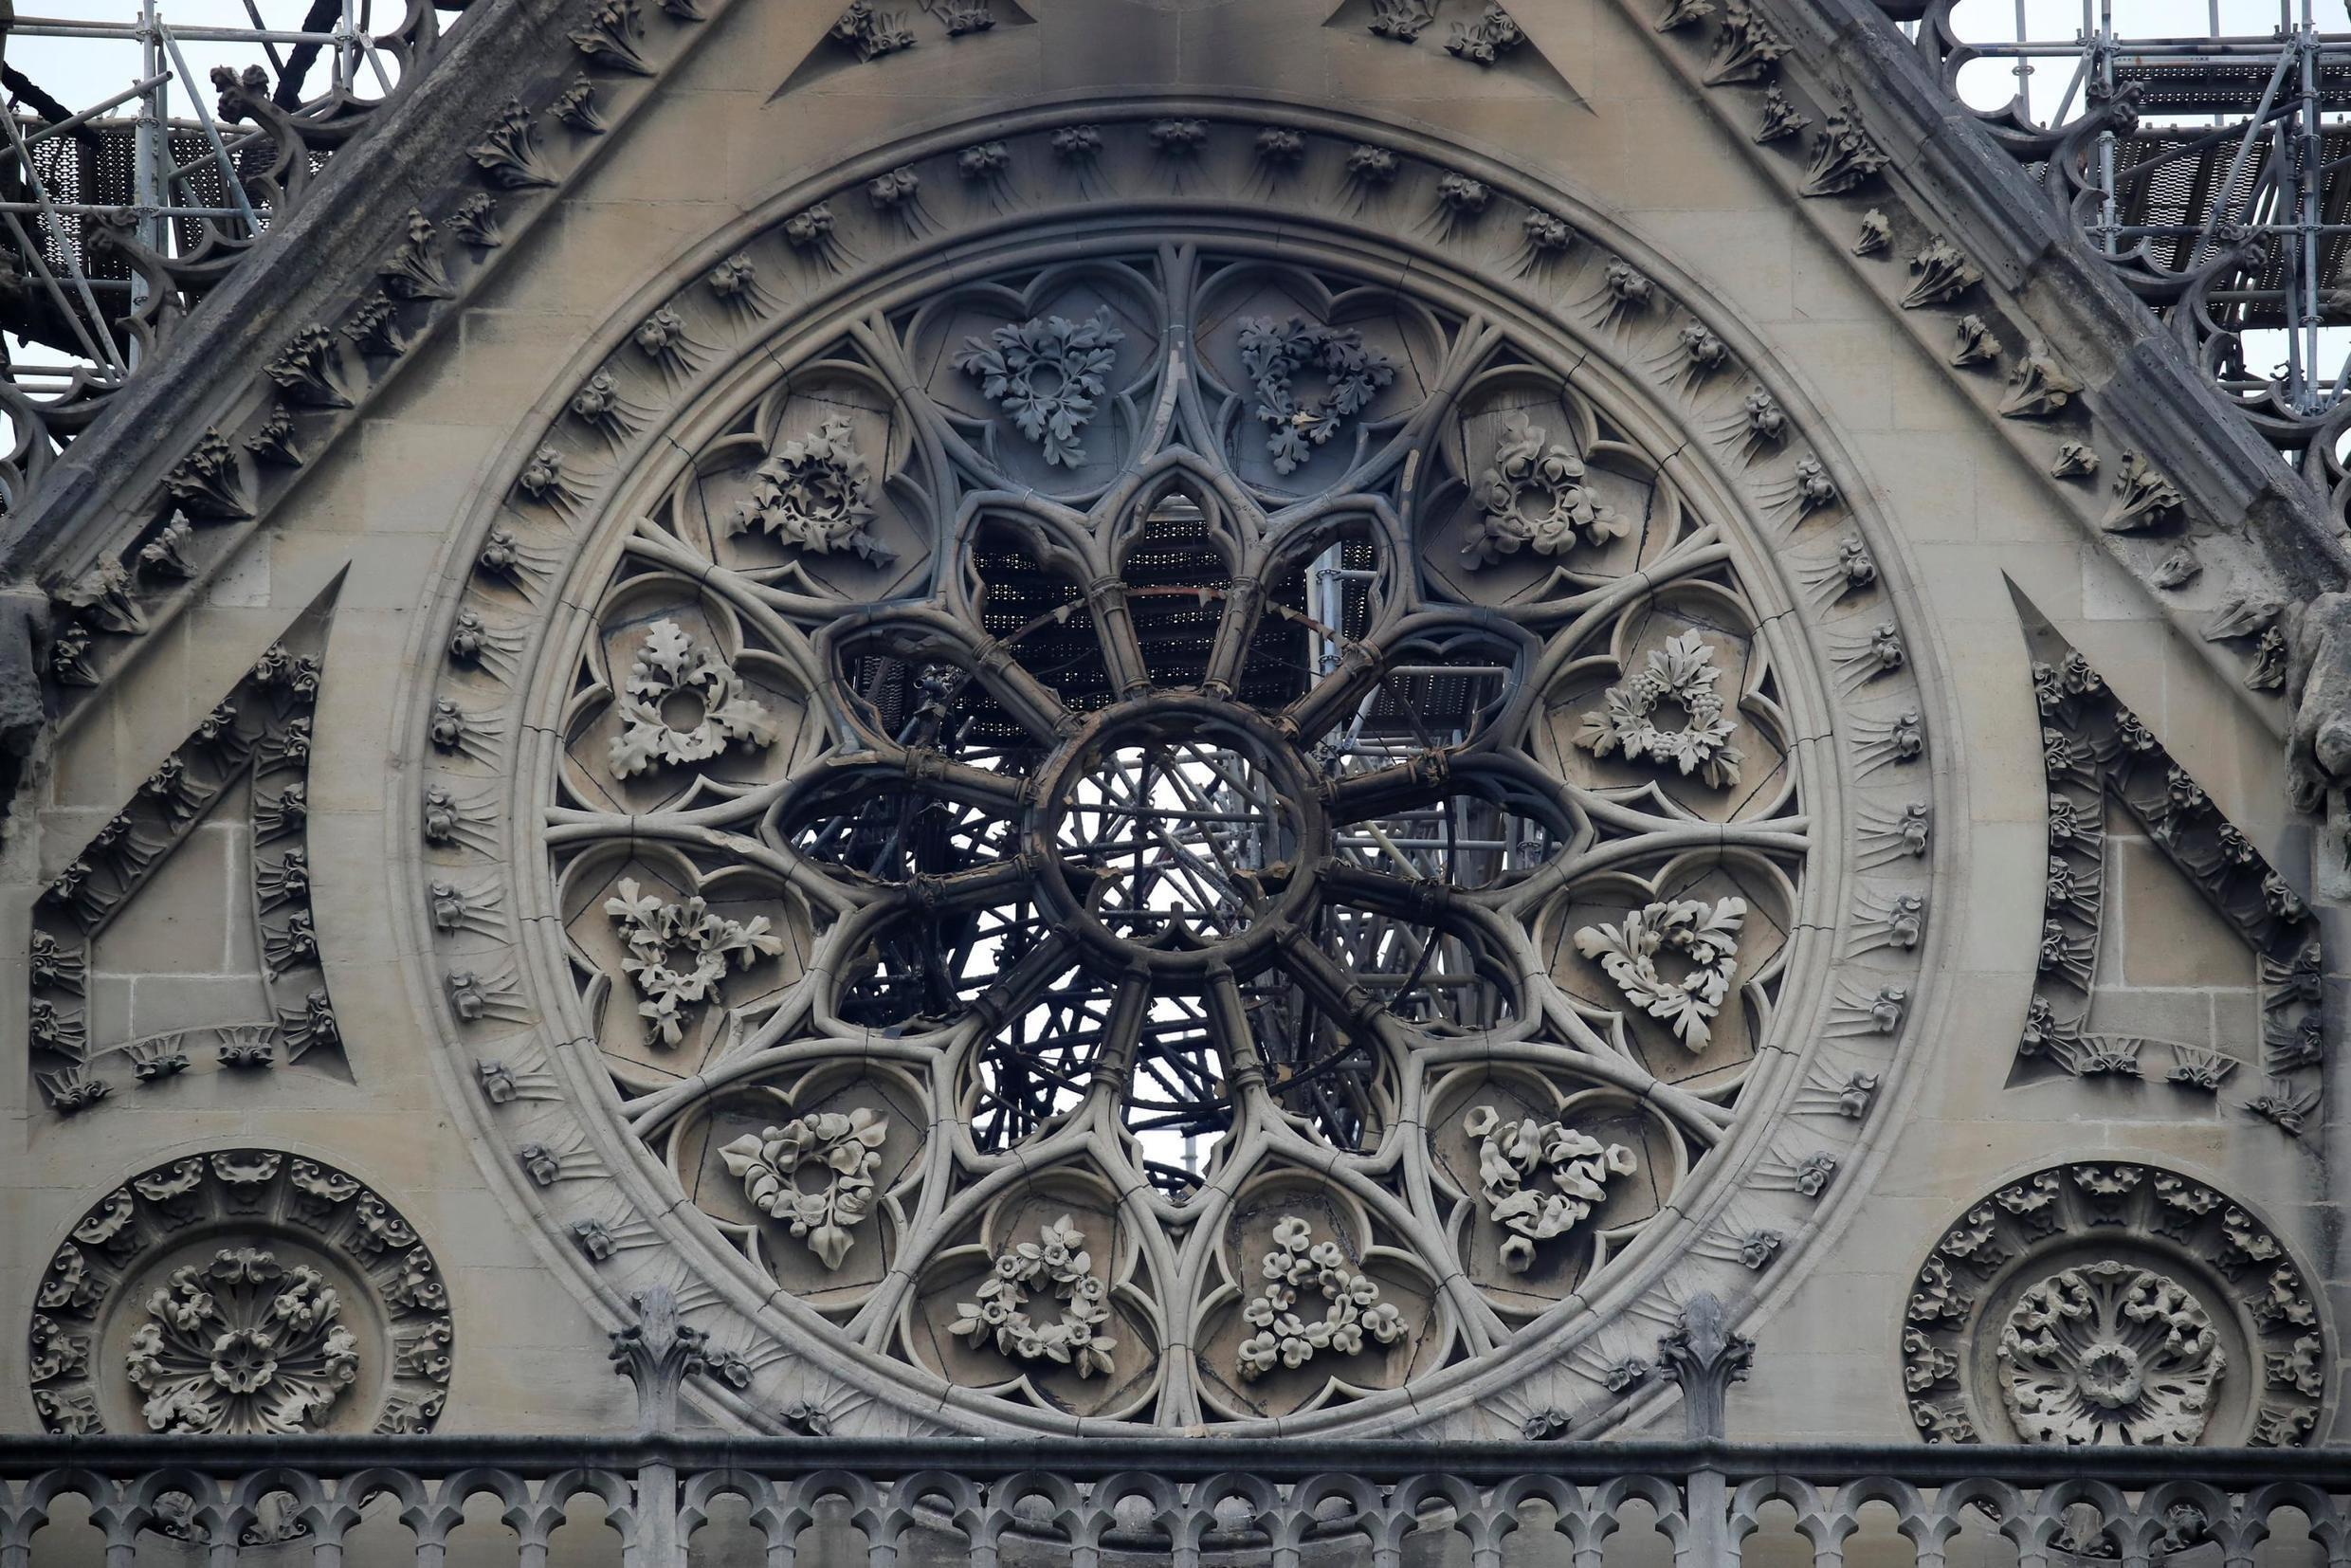 View of Notre-Dame Cathedral after a fire devastated large parts of the gothic gem in Paris, France April 16, 2019. A massive fire consumed the cathedral on Monday, gutting its roof and stunning France and the world.